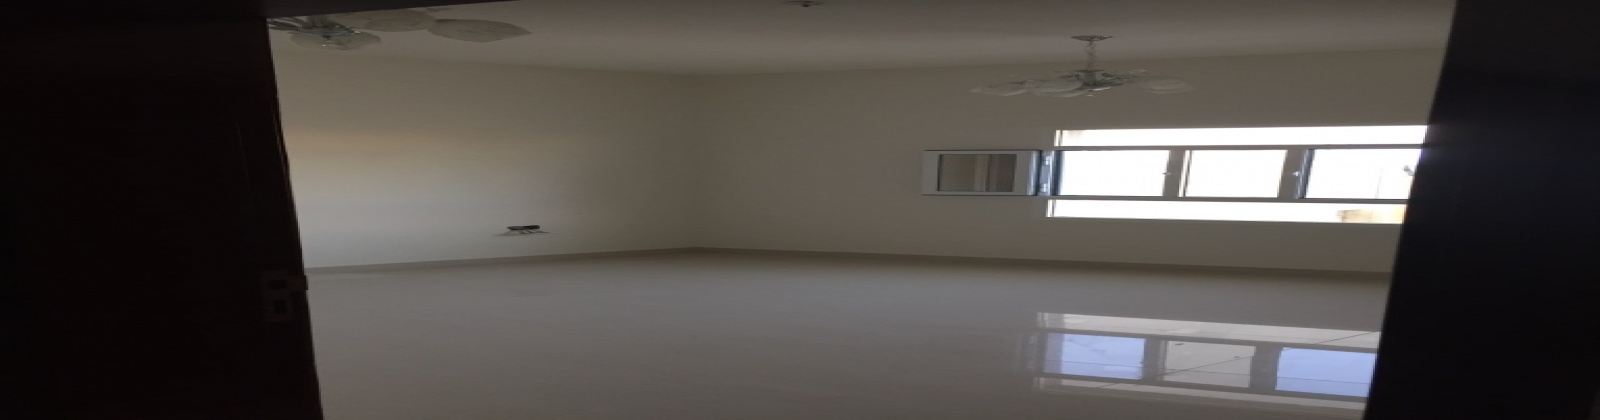 Muscat,2 Bedrooms Bedrooms,2 BathroomsBathrooms,Apartment,Mashhadi Property,3,1013